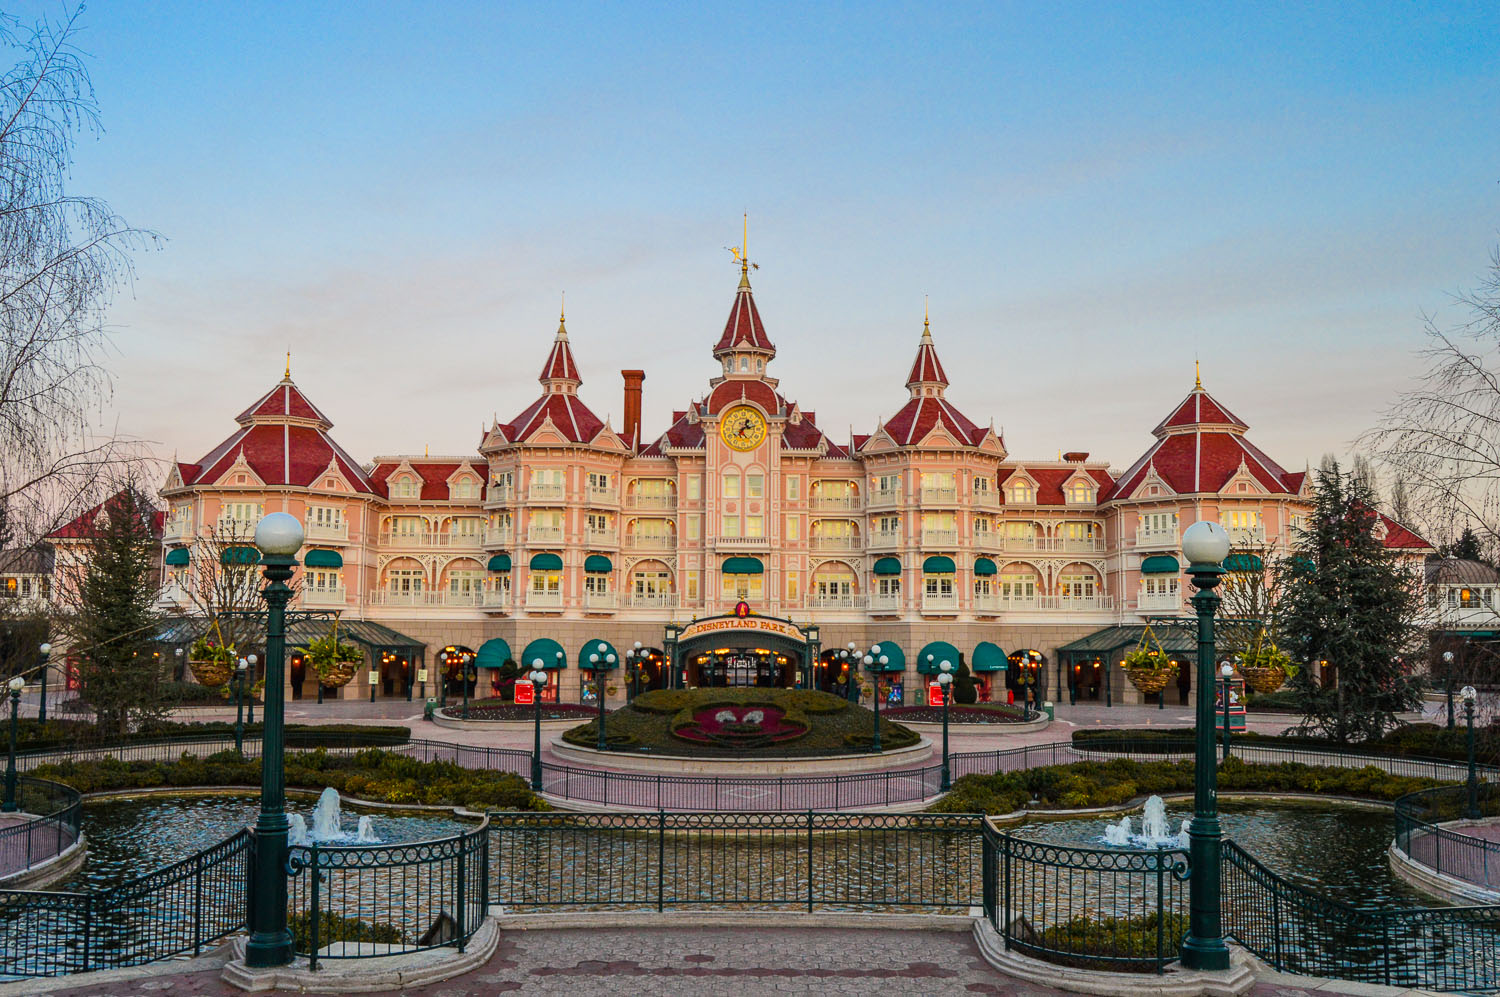 Disneyland Paris - Paradise